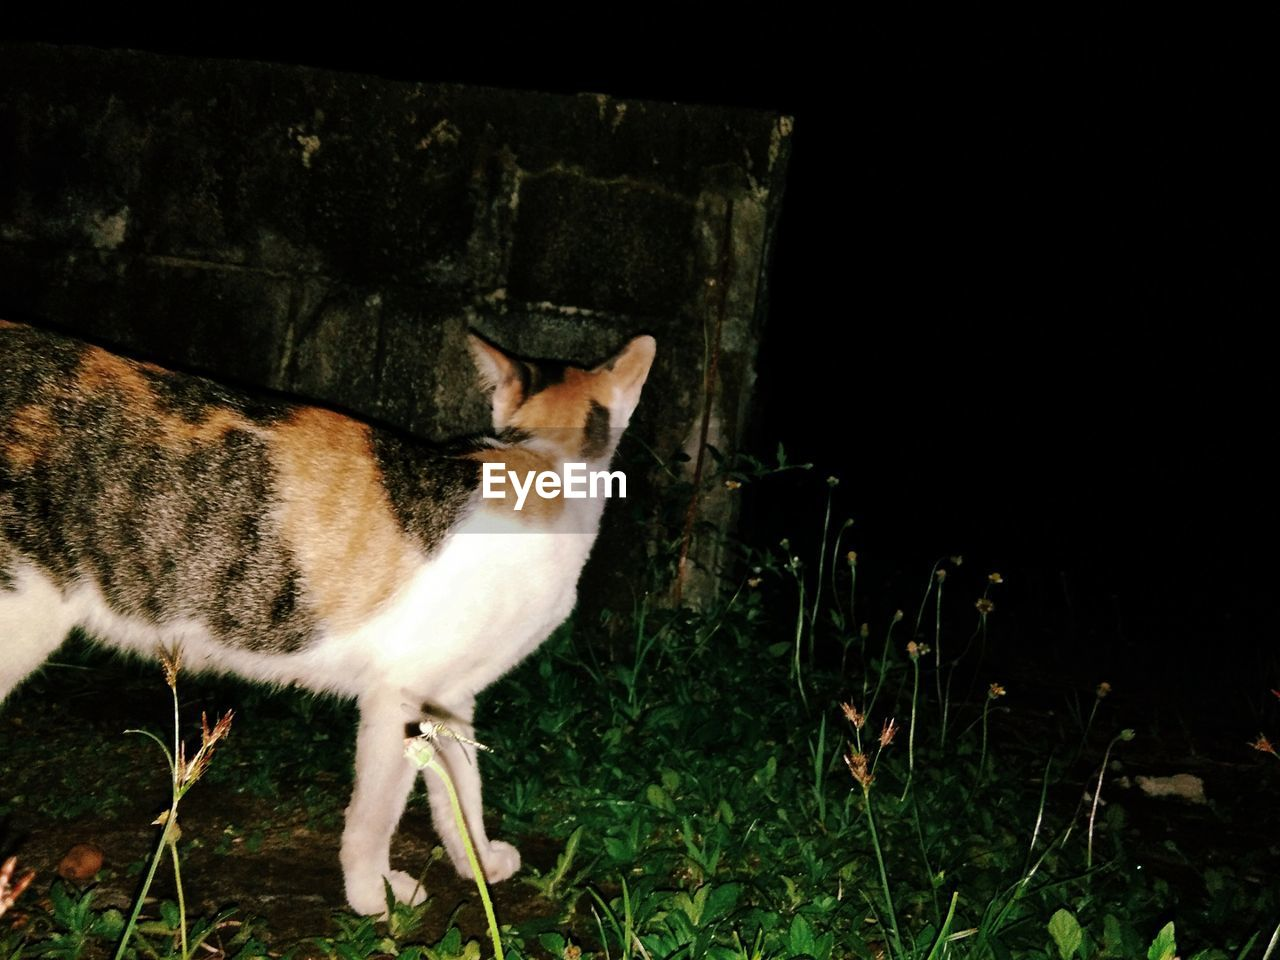 one animal, mammal, vertebrate, domestic animals, domestic, pets, cat, feline, no people, domestic cat, nature, night, looking, standing, full length, grass, portrait, whisker